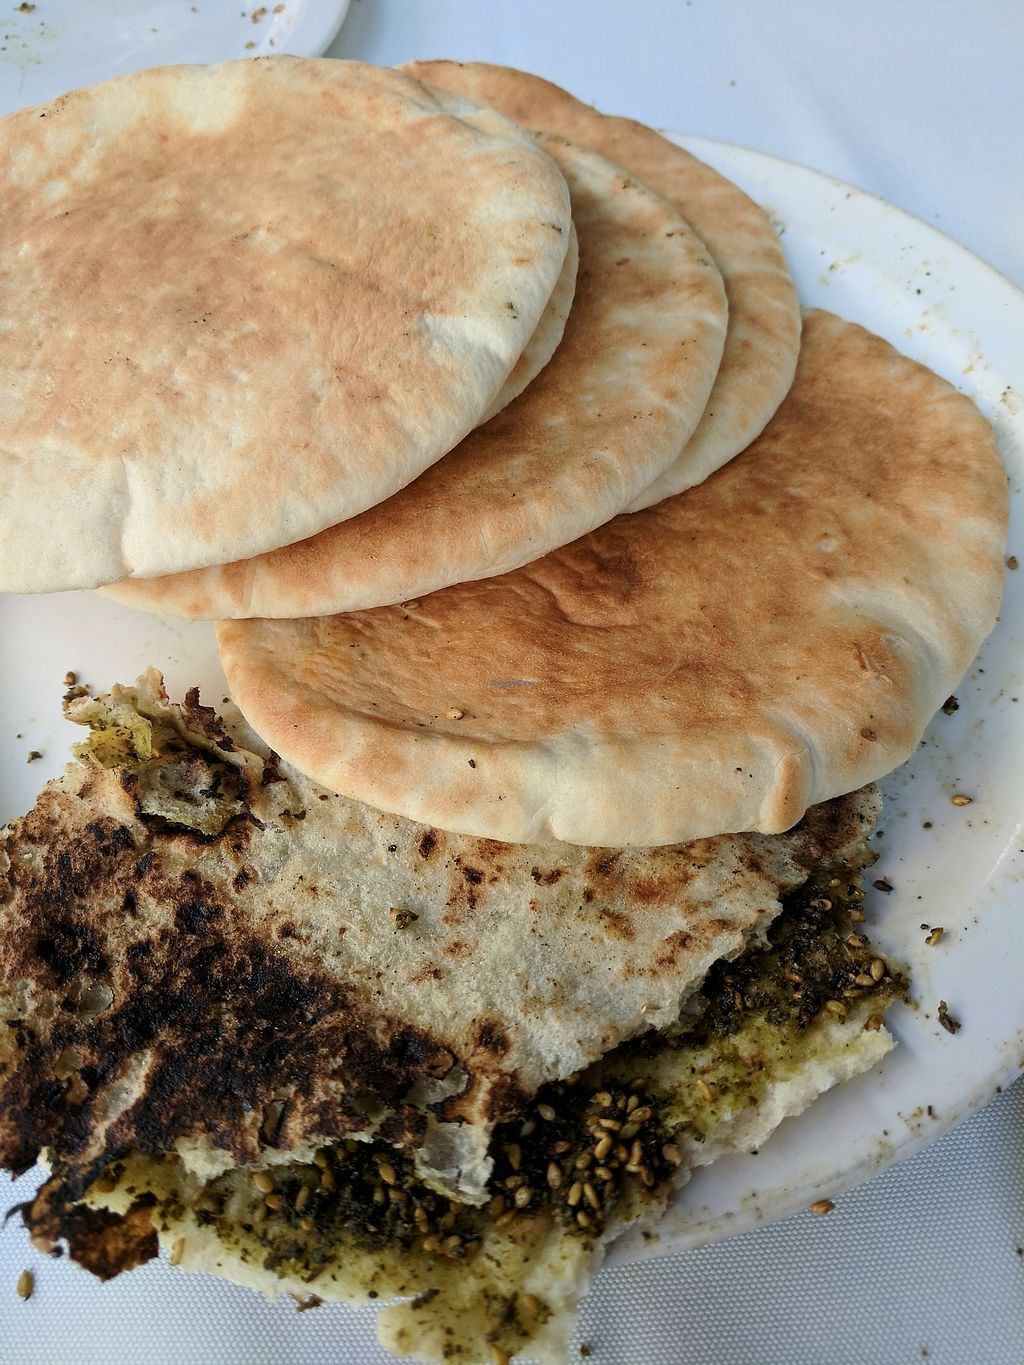 """Photo of Naurah  by <a href=""""/members/profile/eee135"""">eee135</a> <br/>Pita bread and zatar bread <br/> October 7, 2017  - <a href='/contact/abuse/image/102418/312574'>Report</a>"""